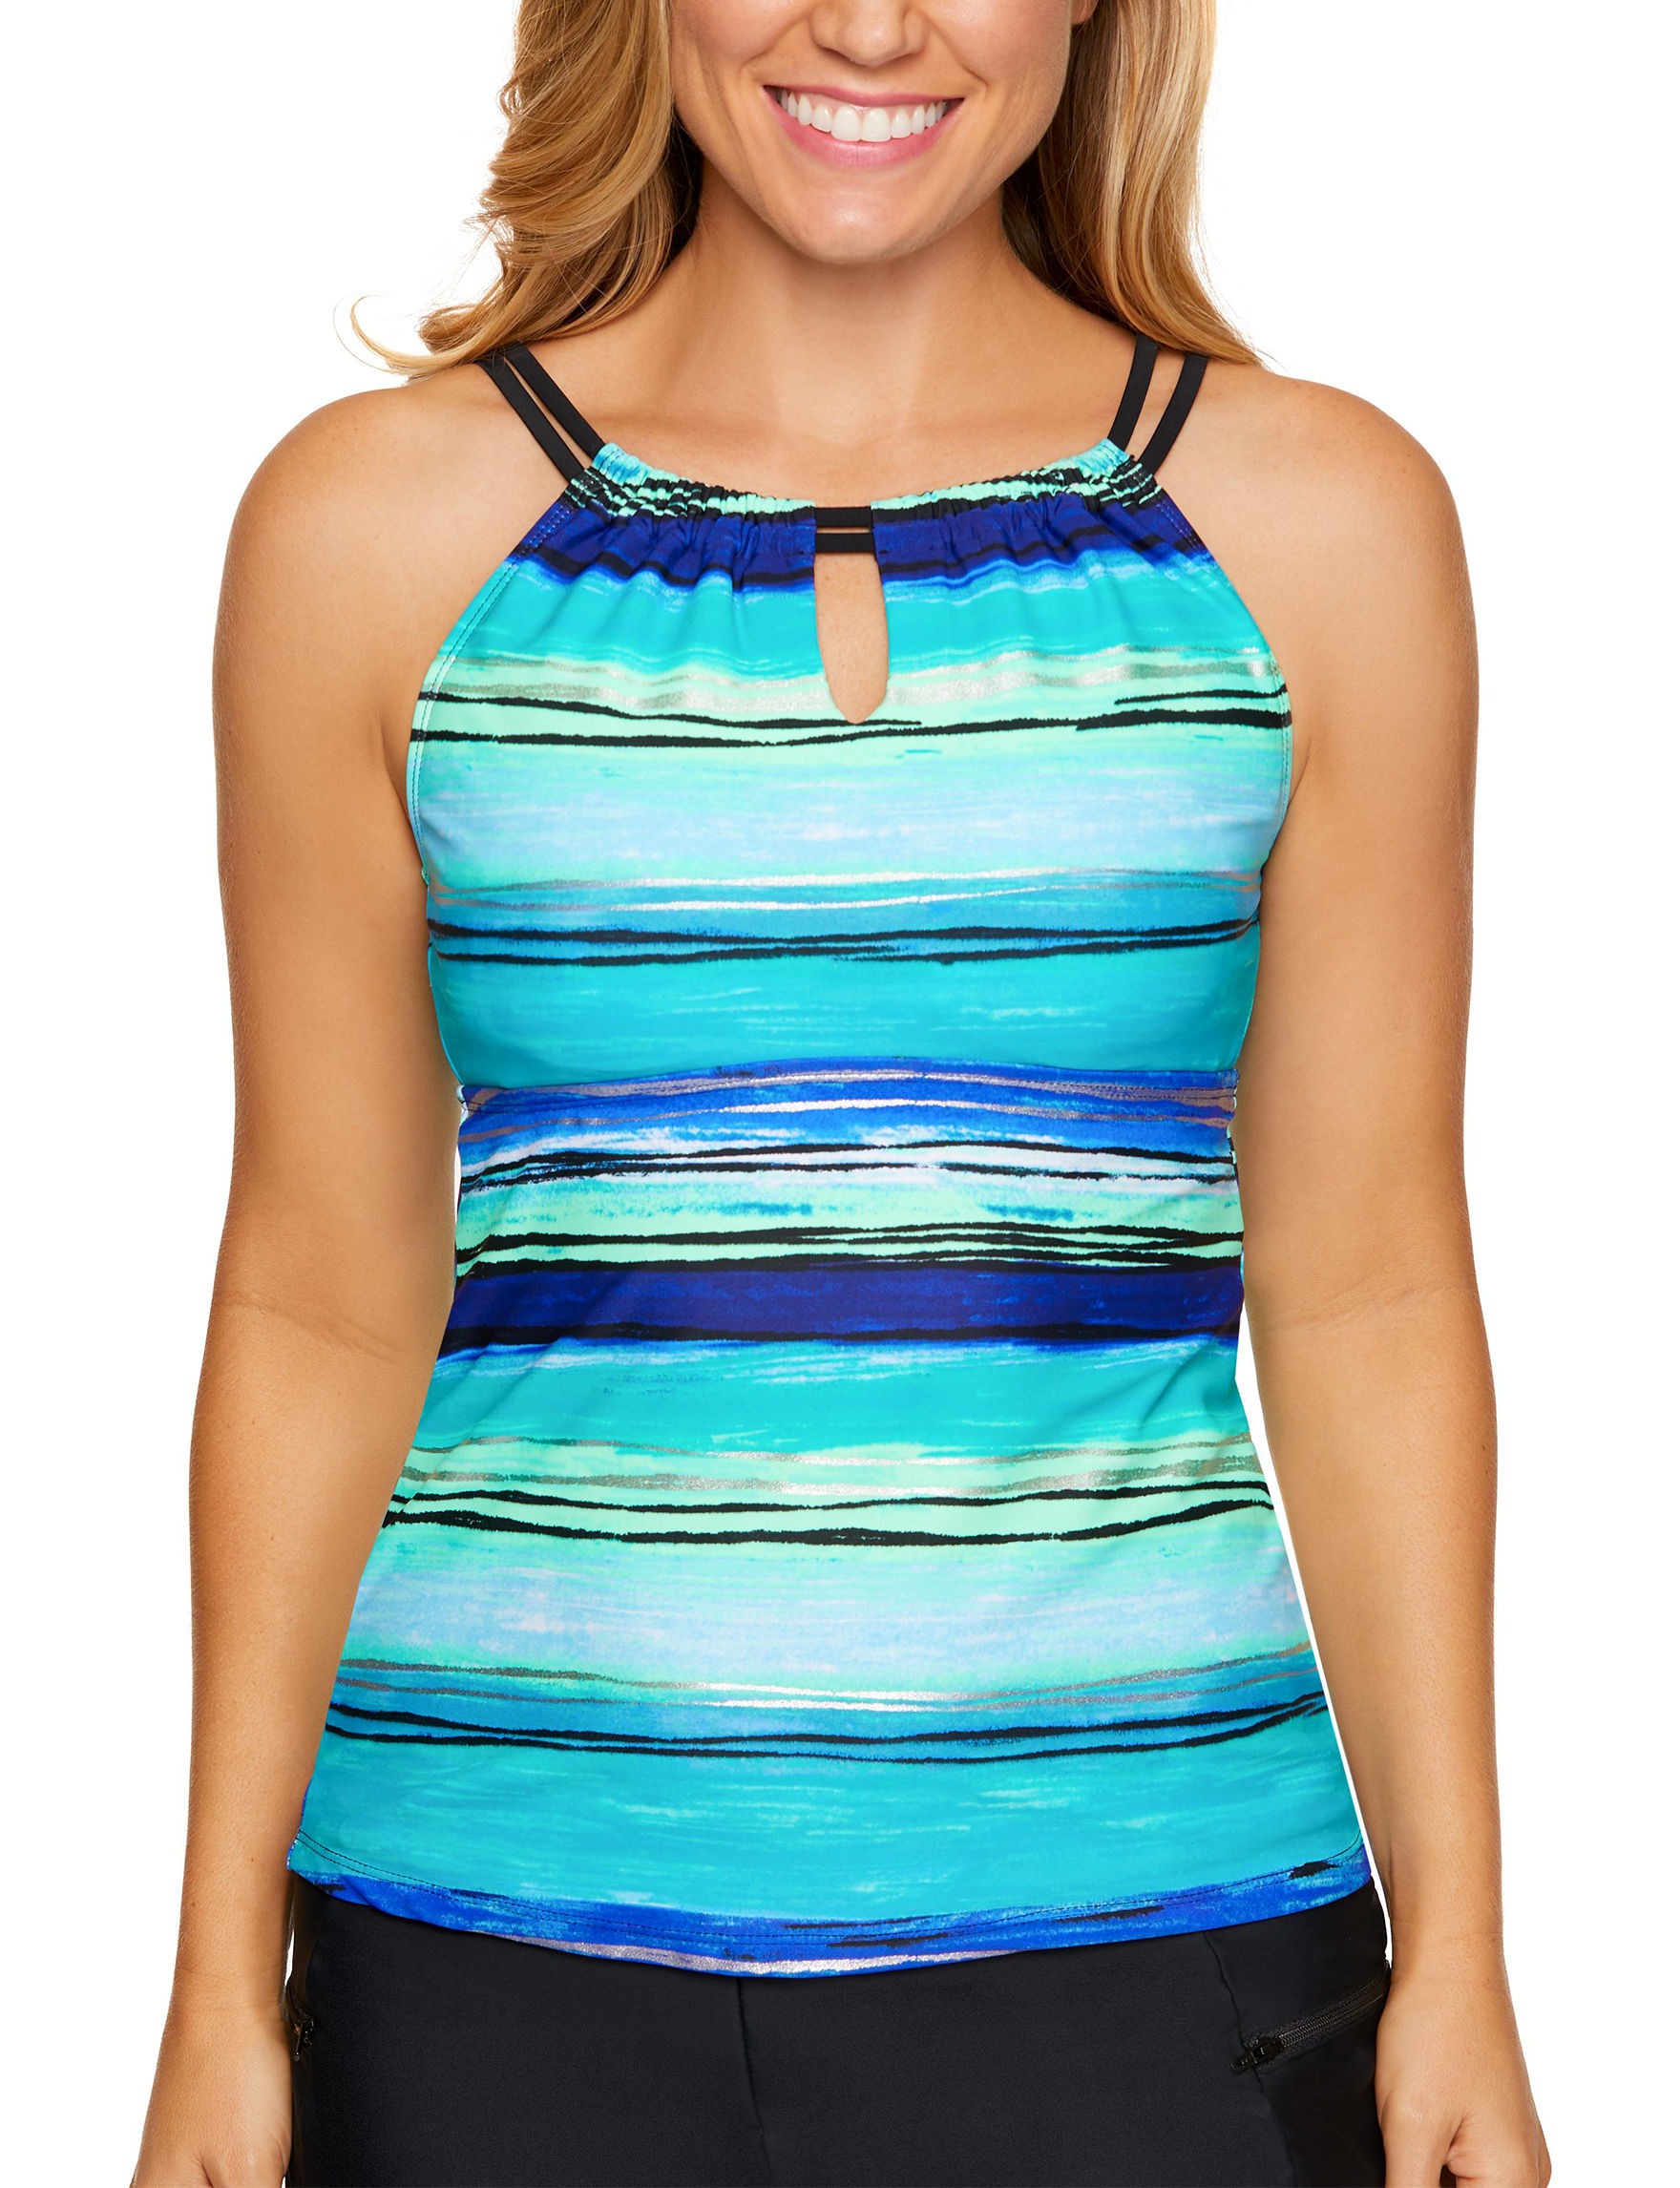 Beach Diva Turquoise Swimsuit Tops Tankini